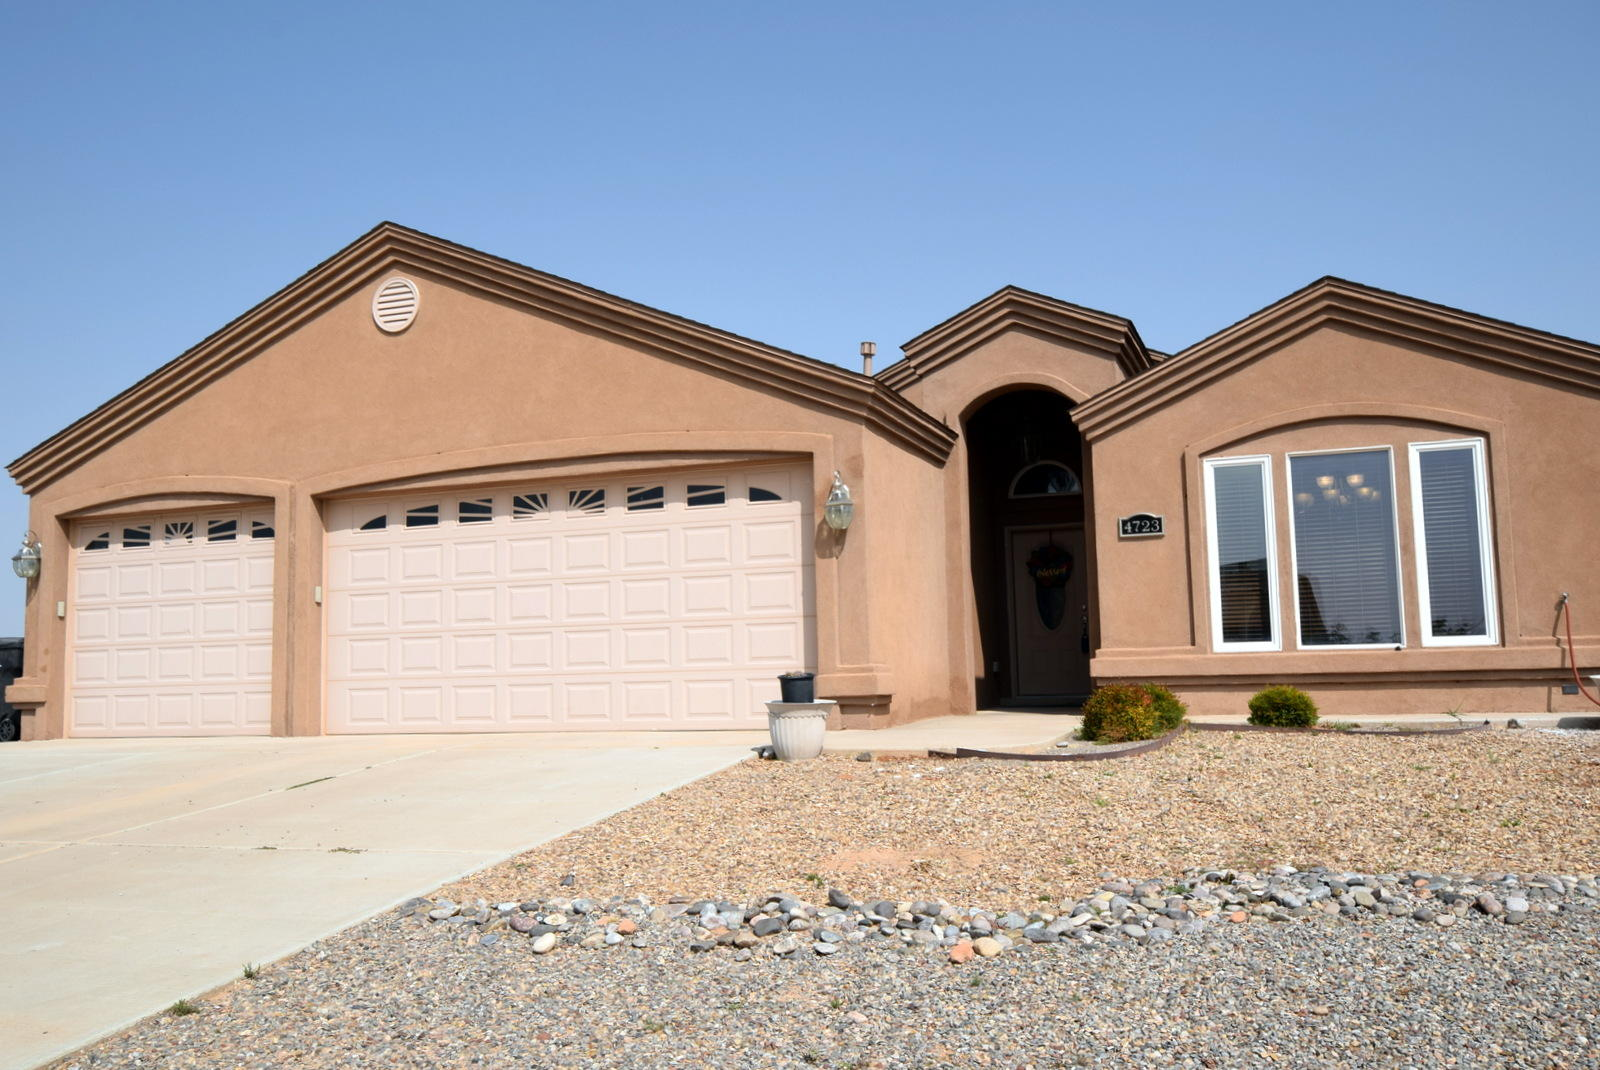 Gorgeous custom home in the heart of Rio Rancho Estates. Light and bright on a half acre w/beautiful granite counters, stainless appliances, abundant cabinetry and breakfast bar.  Enjoy entertaining as you move through the open floor plan from the kitchen, great room,on to the outside large  covered patio. The great room has vaulted ceiling, fireplace and tile floors.  Large master has bath with jetted tub, separate shower and double sinks. Two bedrooms with full bath separate from the master. Oversized 3 car garage and laundry in it's own room. Custom blinds throughout, landscaped front and backyards COME SEE, you will love the home. Preferred closing with Debbie Hennig at Stewart Title.